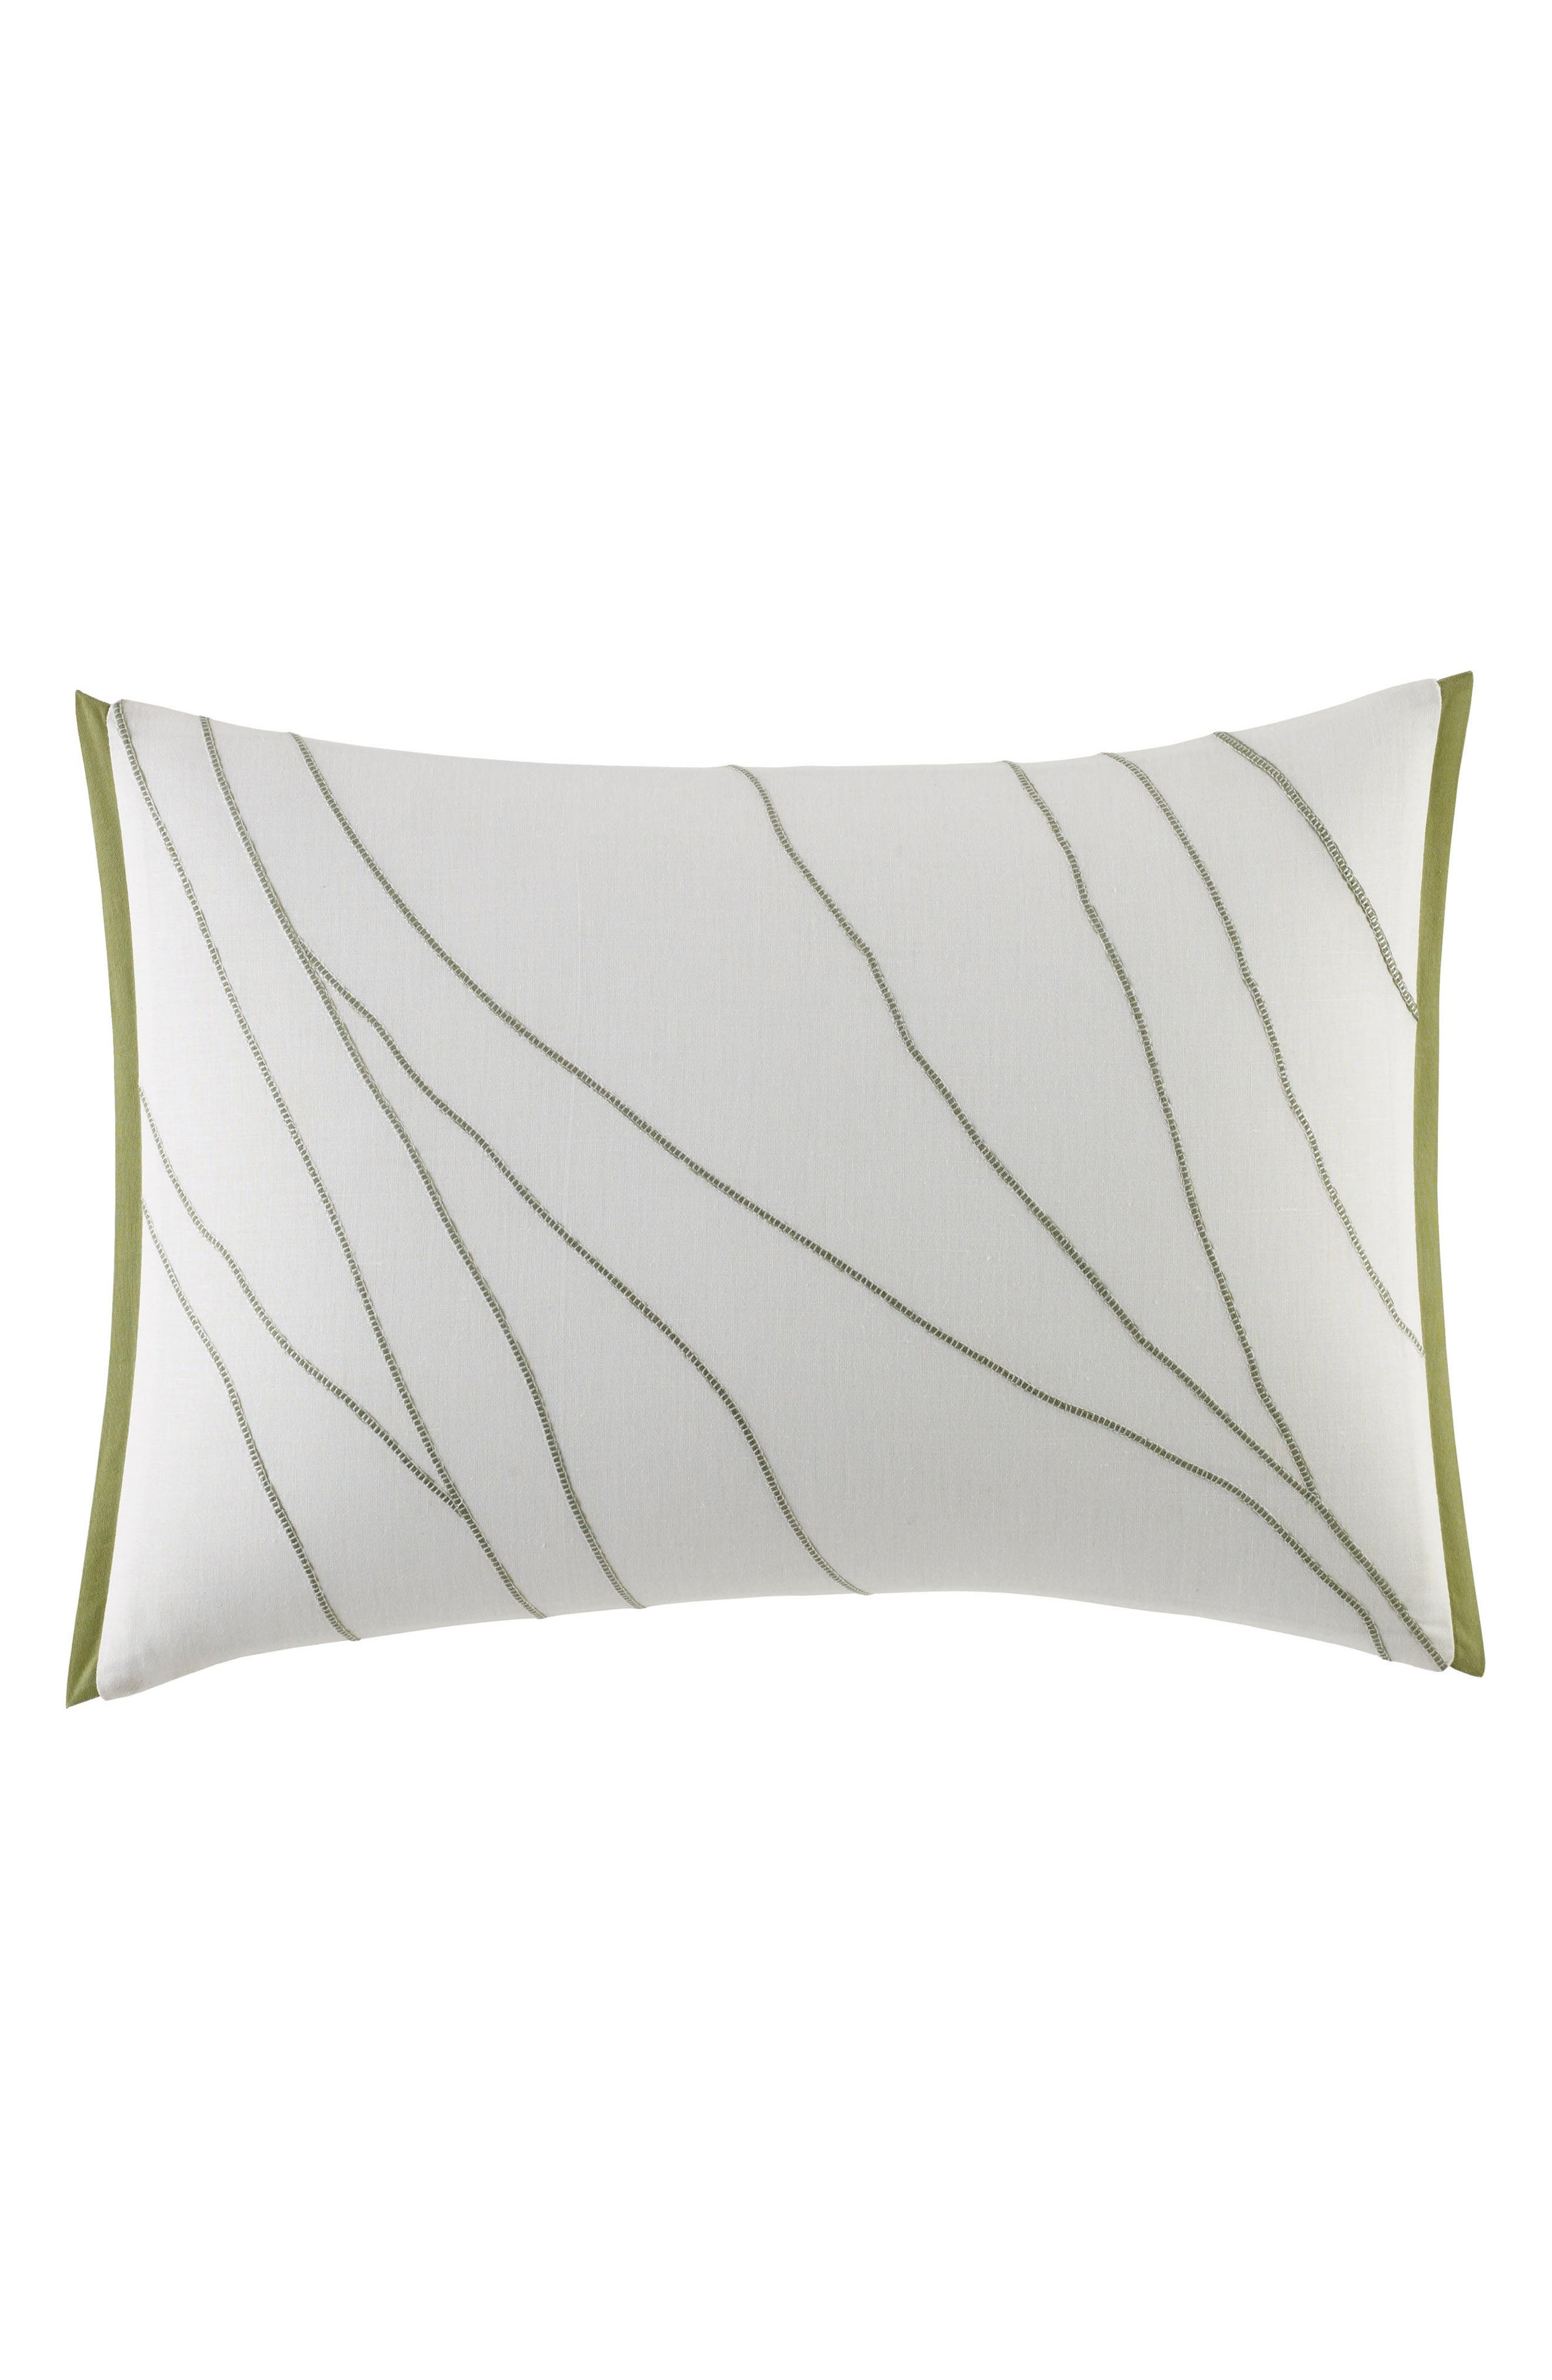 Dragonfly Accent Pillow,                             Main thumbnail 1, color,                             WHITE